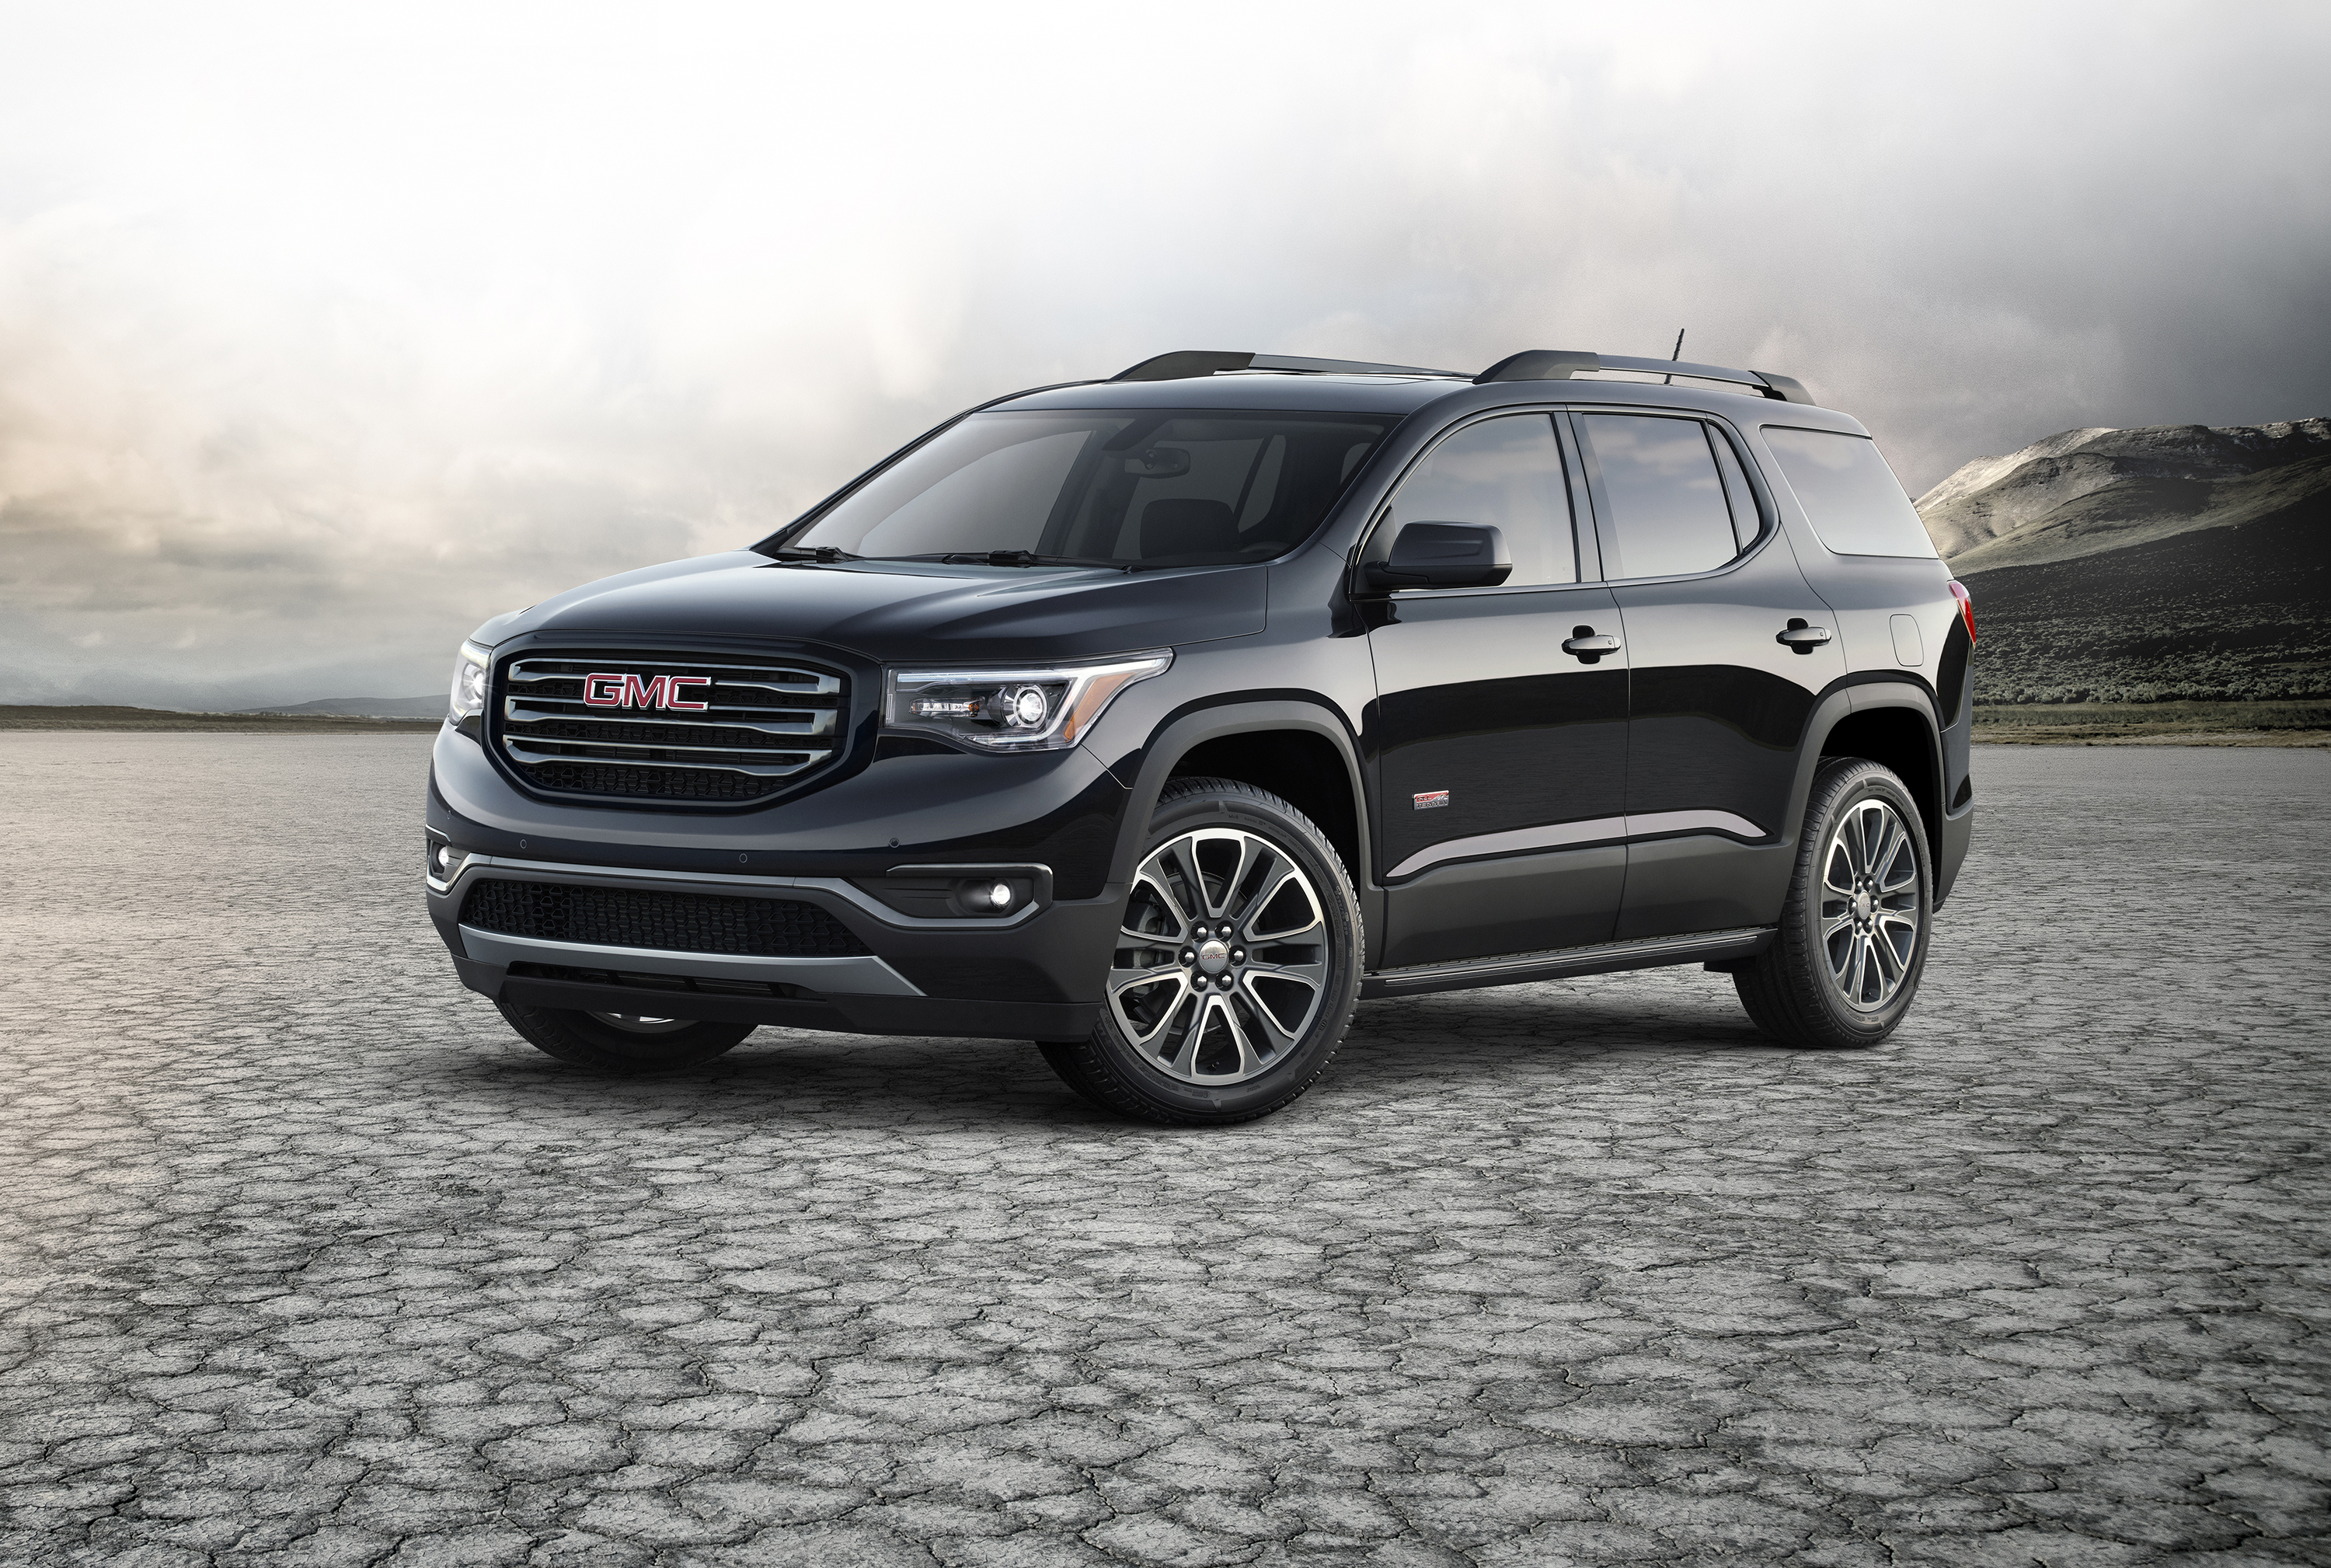 buds for awd acadia used img auto in michigan sale listing gmc cars